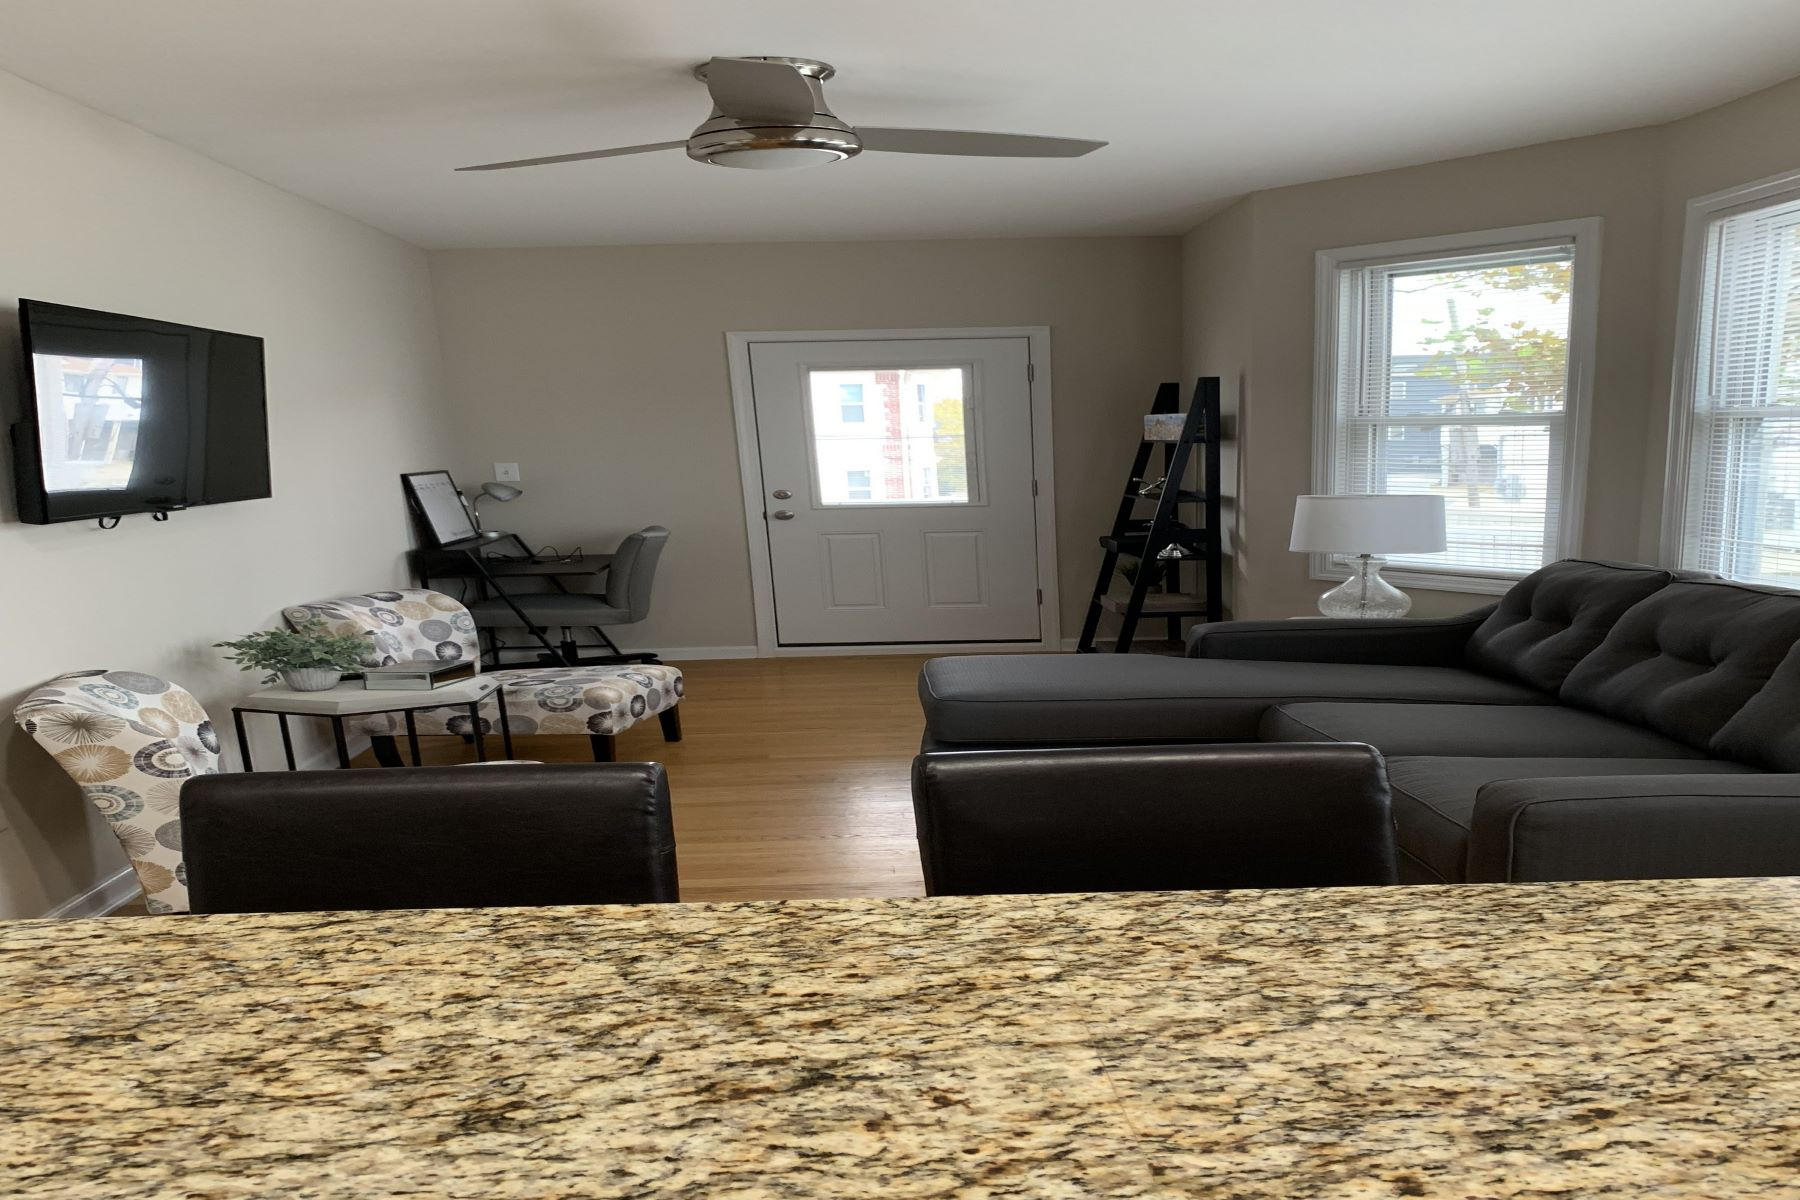 Additional photo for property listing at 5123 Ventnor Ave, Unit A  Ventnor, New Jersey 08406 Vereinigte Staaten